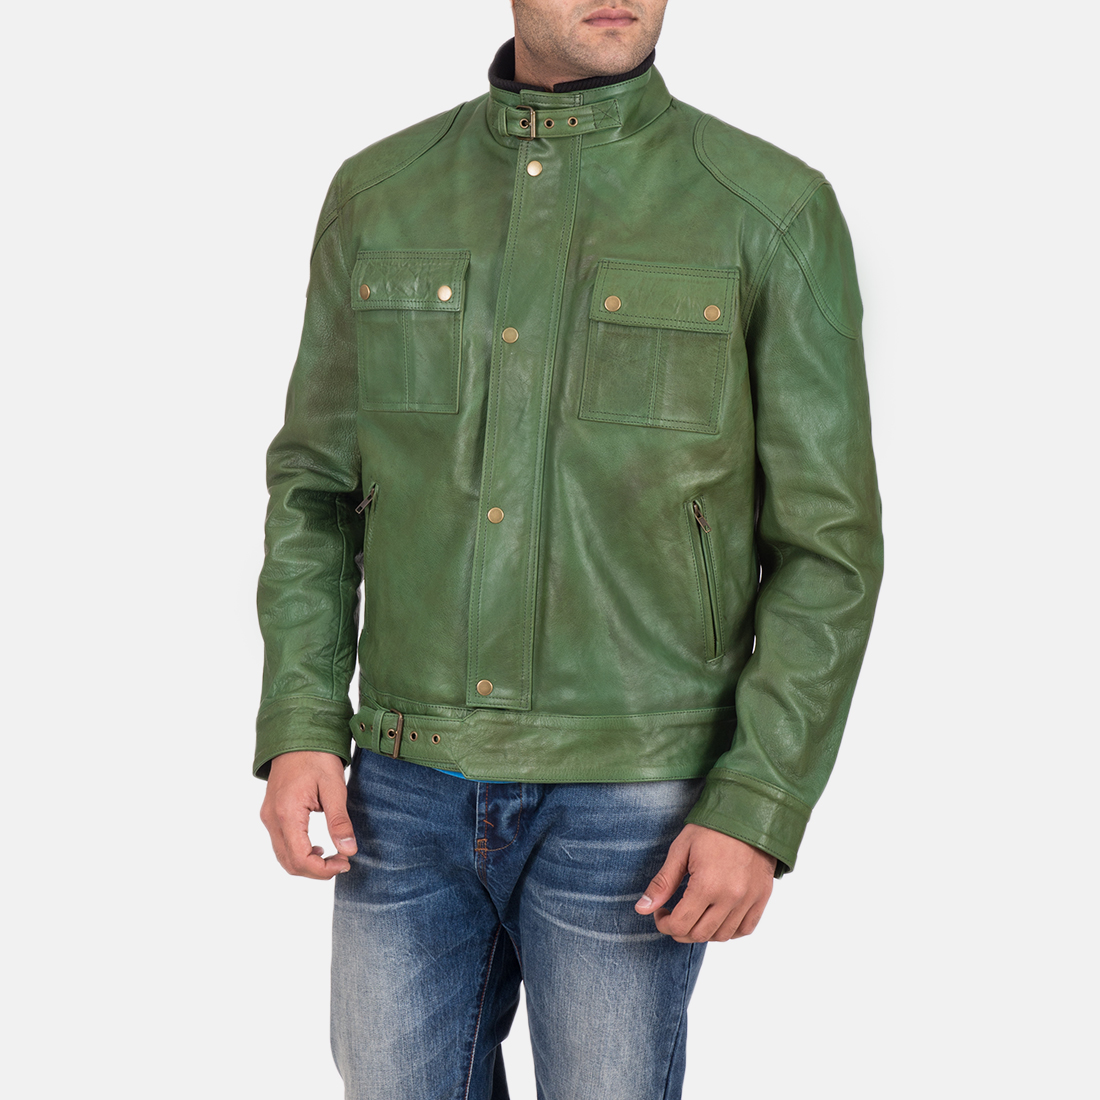 Men's Krypton Distressed Green Leather Jacket 1